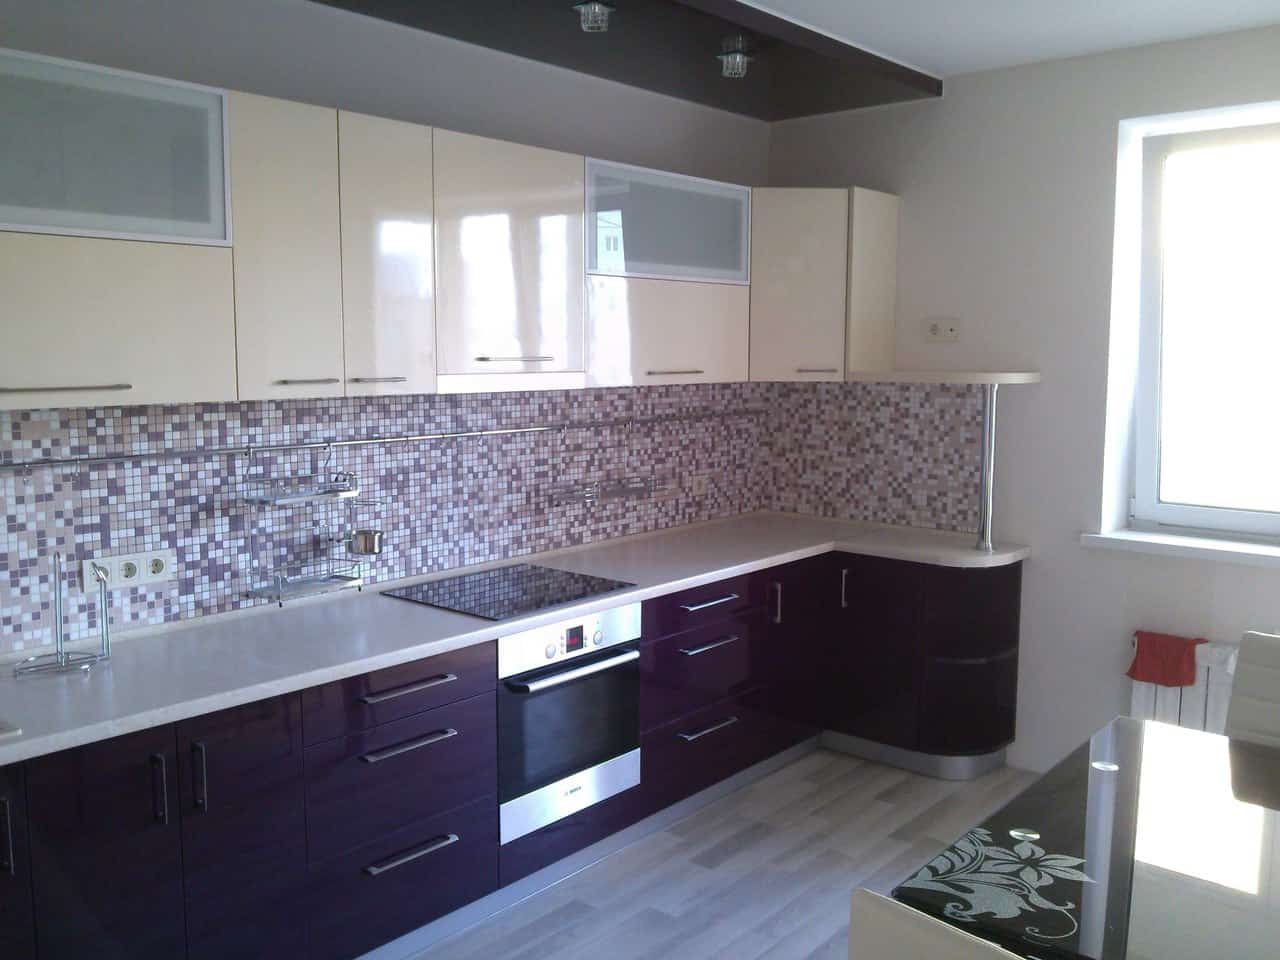 Designer Kitchen Decorating Ideas ~ Interior design trends purple kitchen